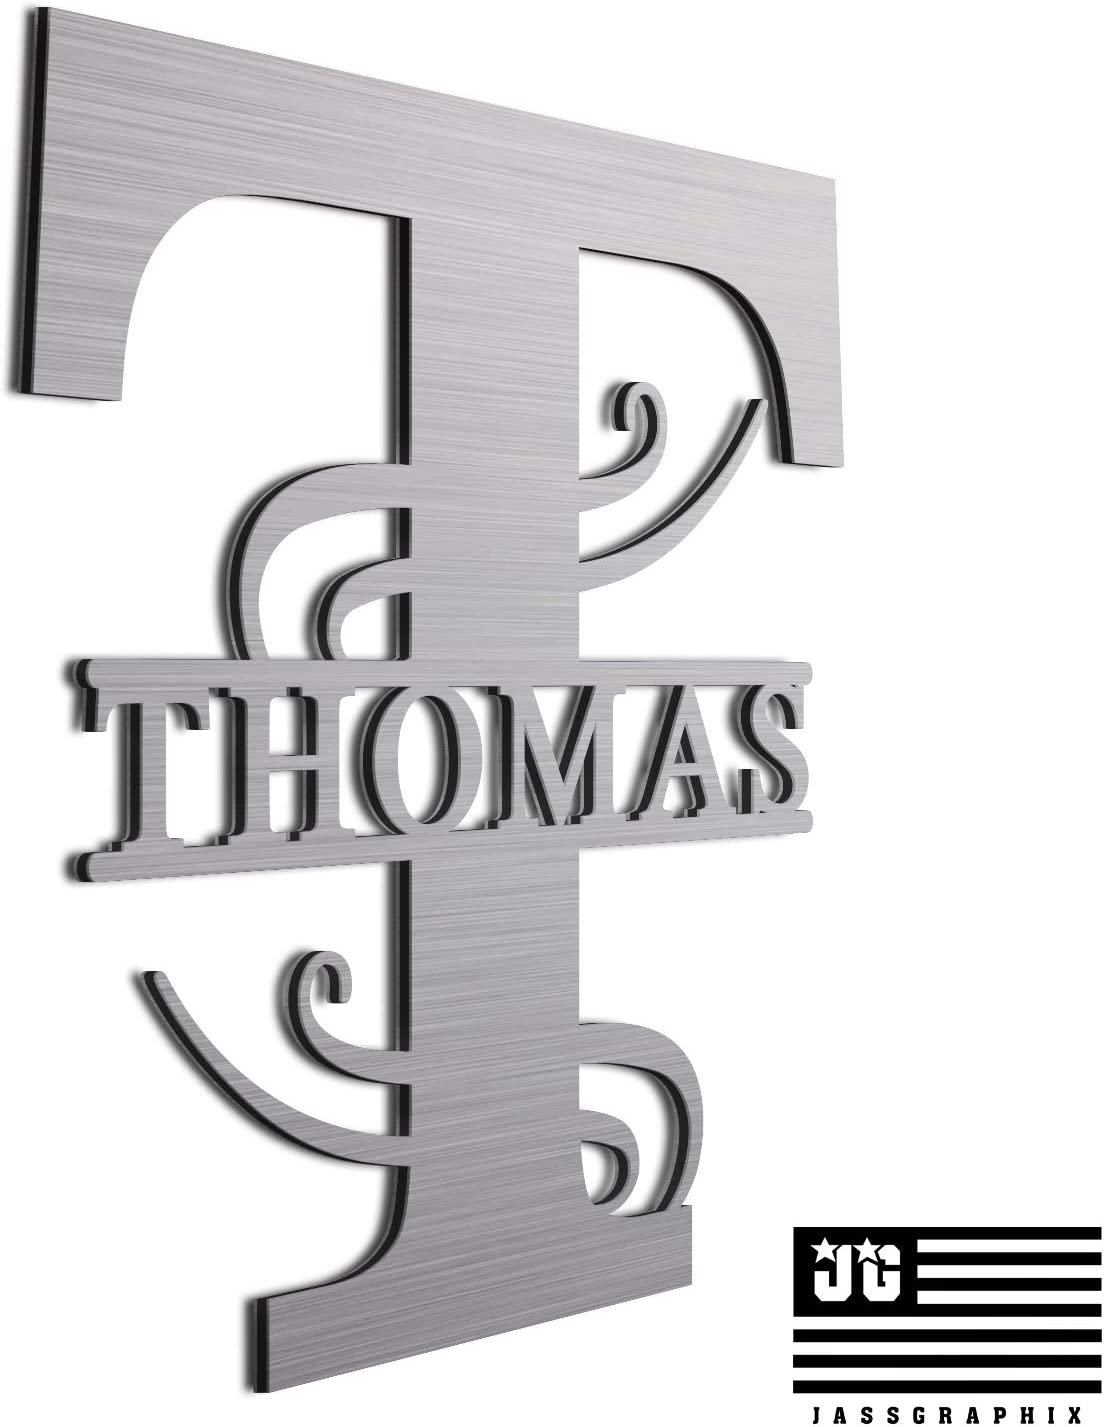 "JASS GRAPHIX Personalized 12"" Brushed Aluminum Thomas Monogrammed Sign Door Wall Decor"